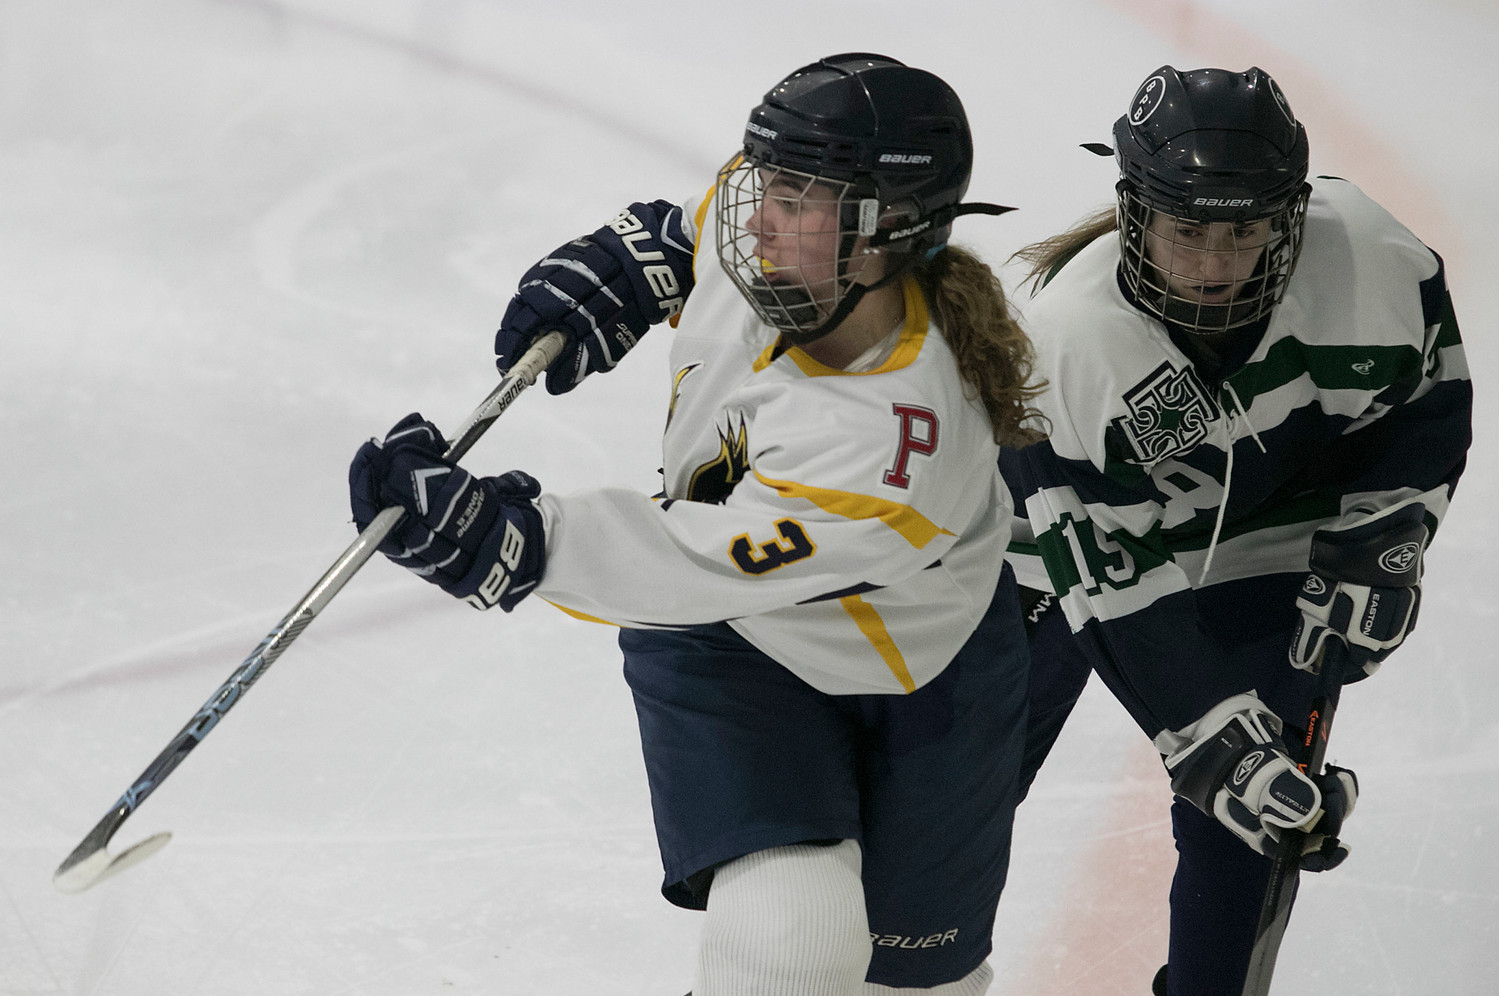 Forward Madison Cornell passes the puck up ice in the third period. She had an assist in the second period on a goal by Madelyn Cox.